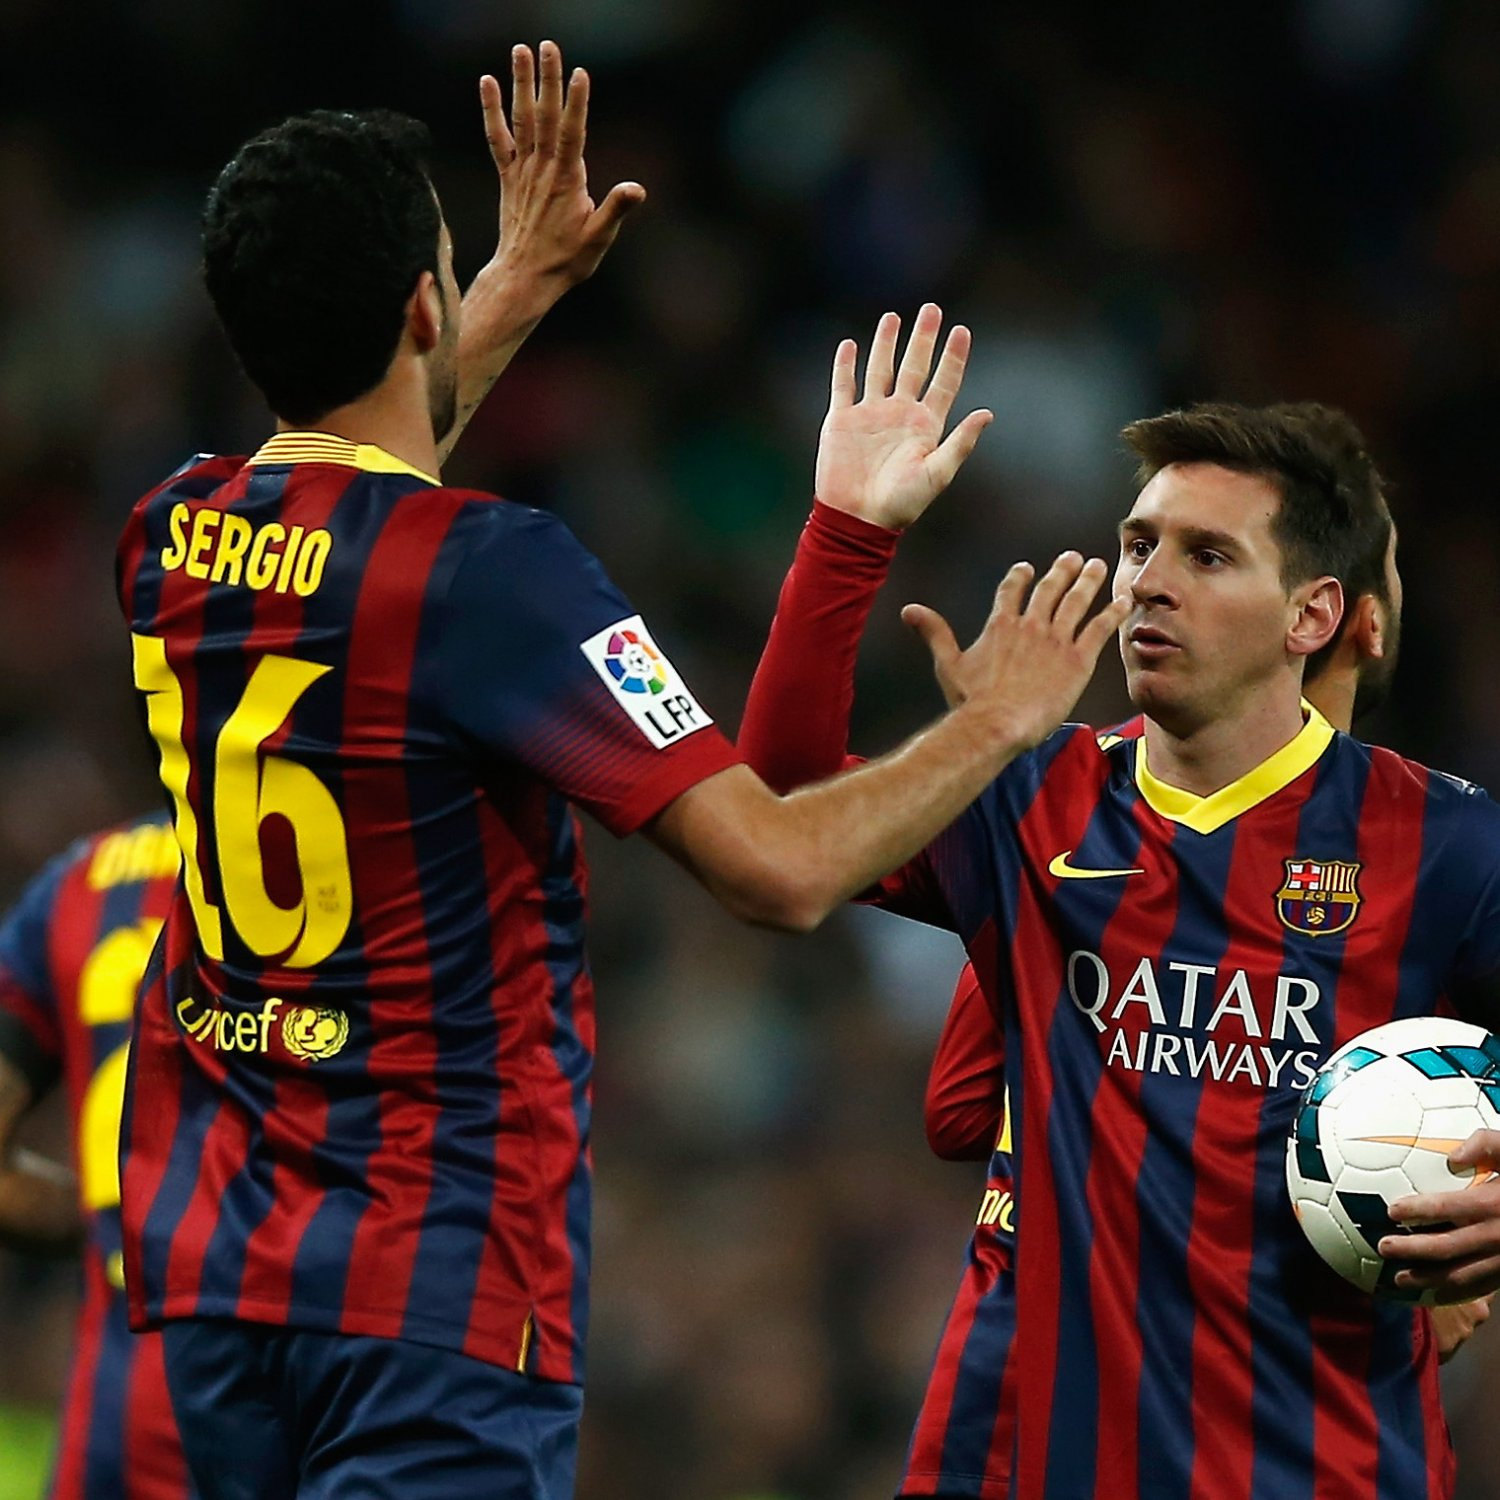 Celta Vigo Vs Barcelona Direct: Barcelona Vs. Celta Vigo: La Liga Live Score, Highlights